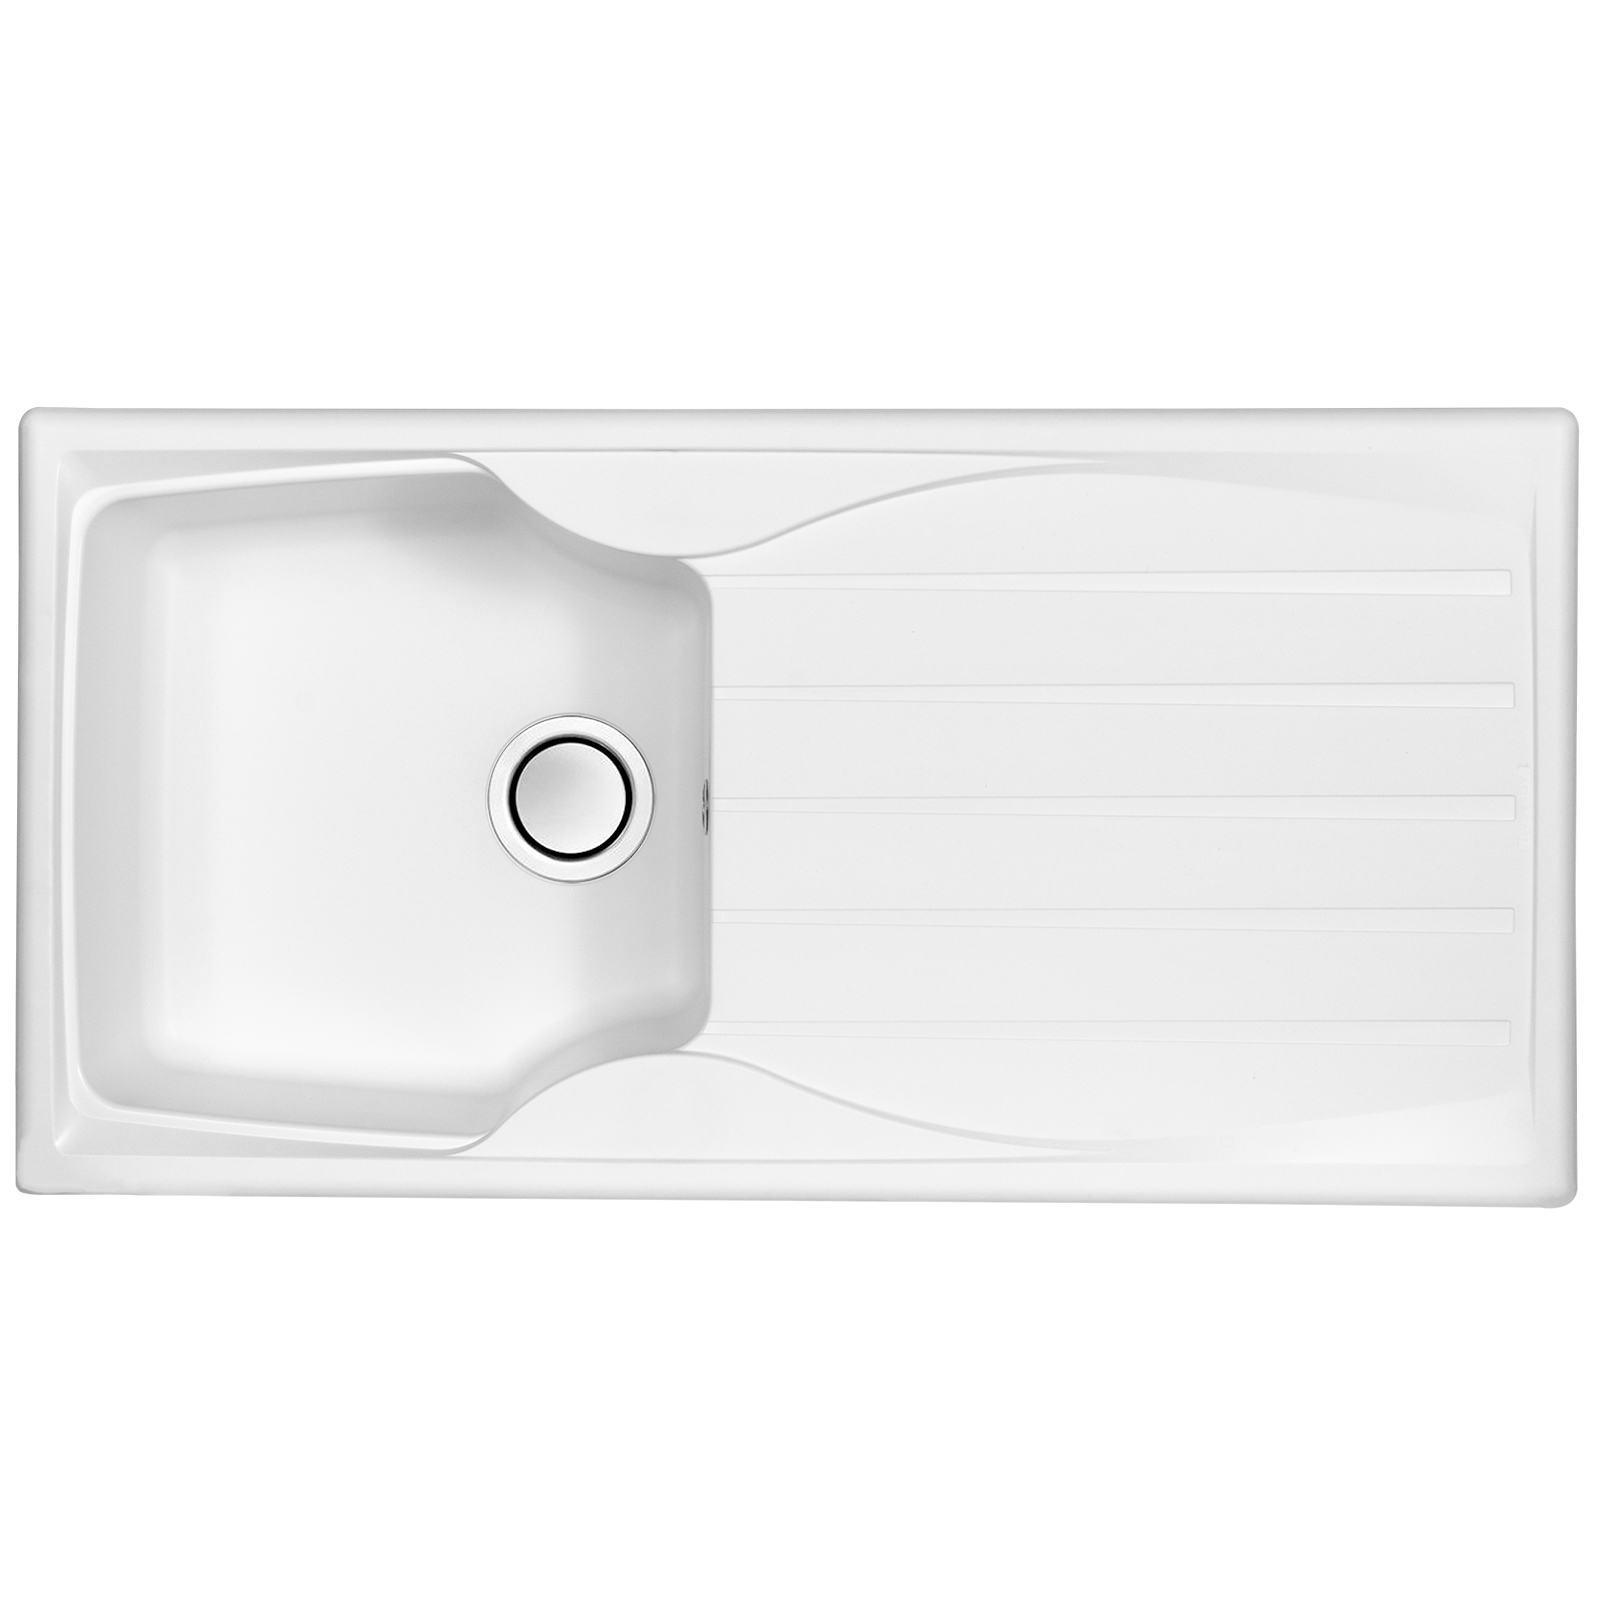 Astracast sierra 1 0 bowl teflite reversible white kitchen sink and waste kit at ship it appliances